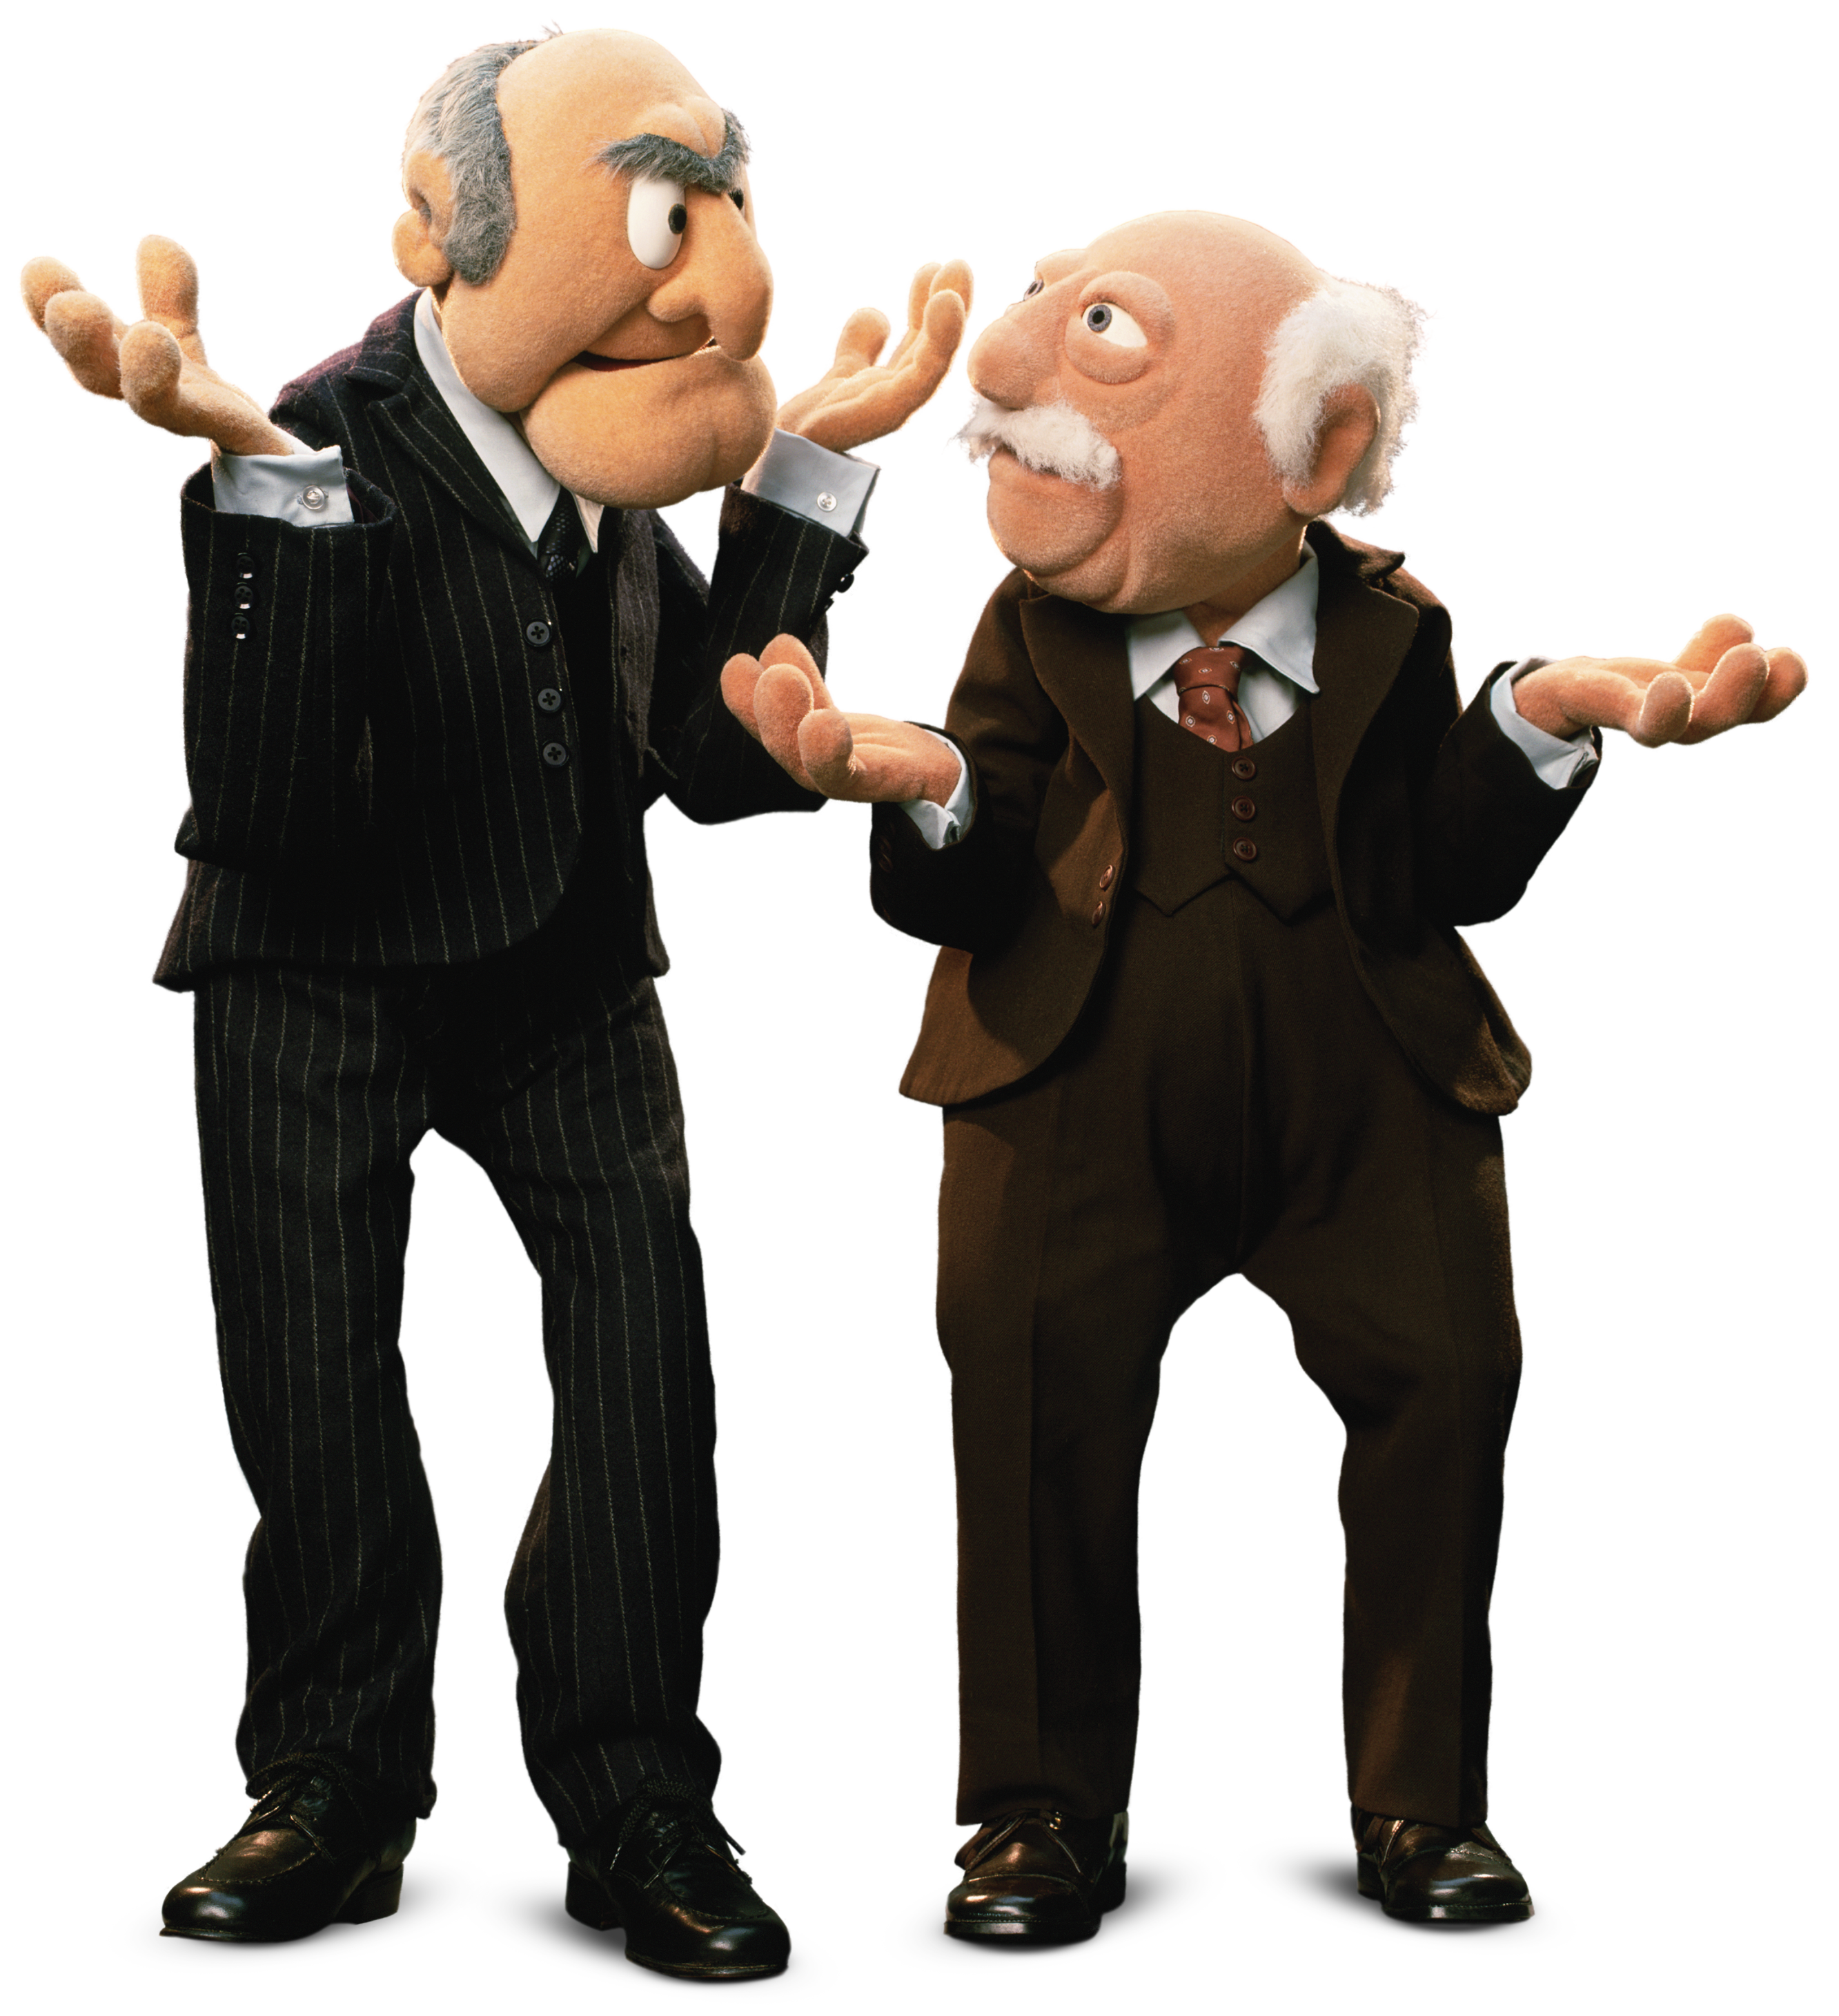 1000 Ideas About Statler And Waldorf On Pinterest: Pin By Mark Richard On Waldorf & Statler